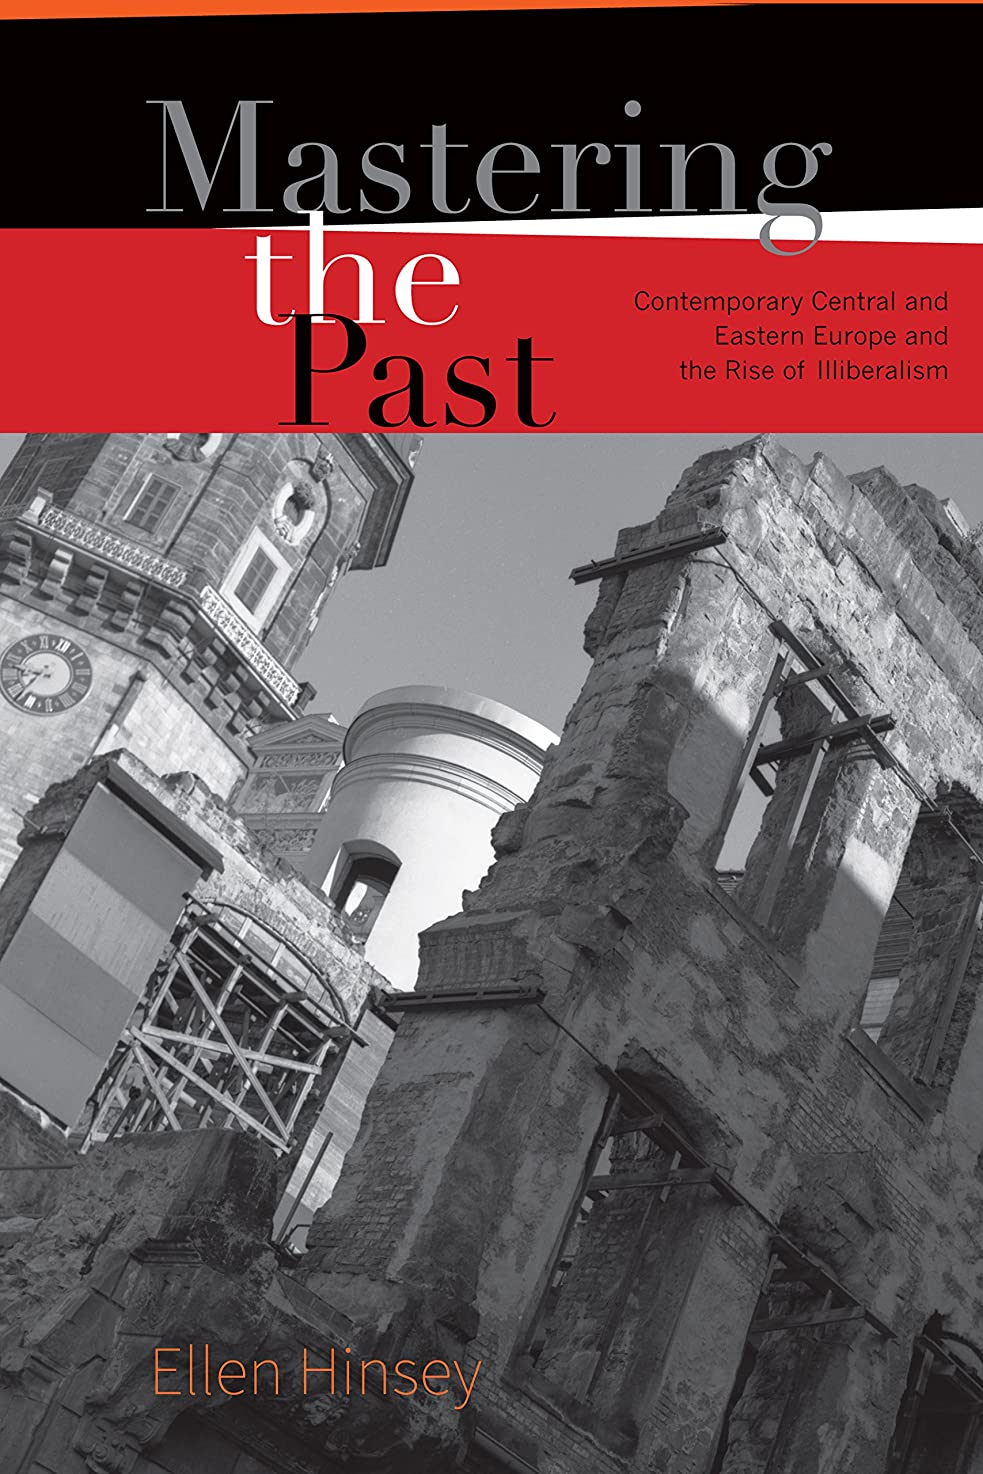 物足りない嫌なジョットディボンドンMastering the Past: Contemporary Central and Eastern Europe and the Rise of Illiberalism (English Edition)